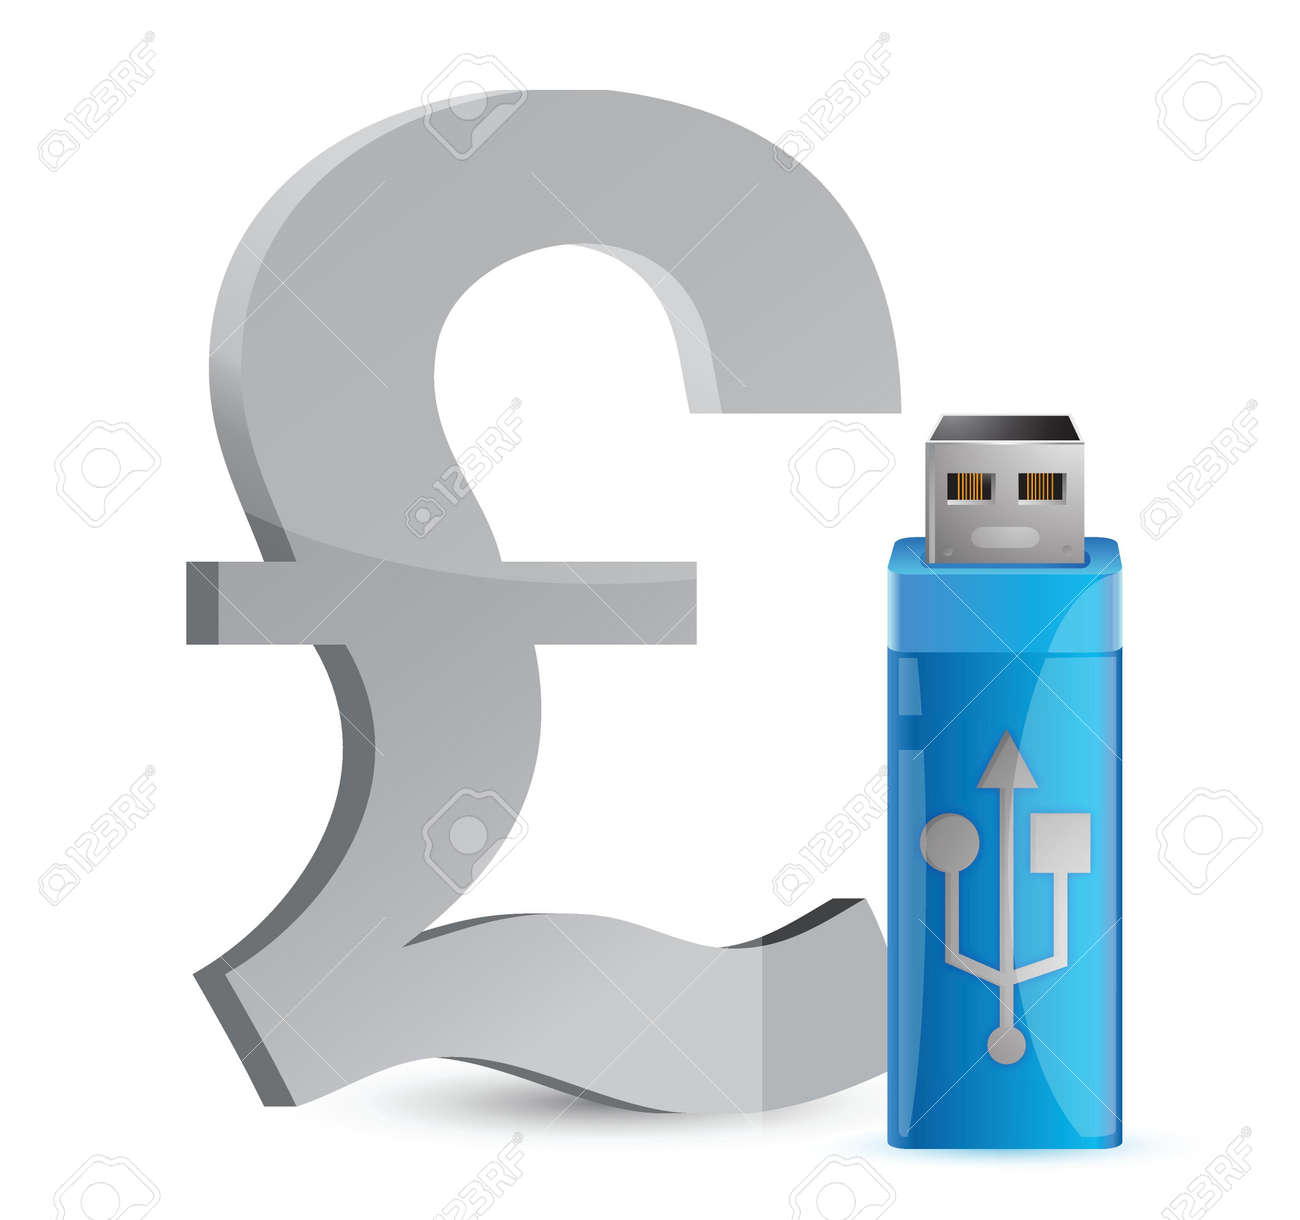 currency sign USB memory stick illustration graphic design Stock Vector - 17250264